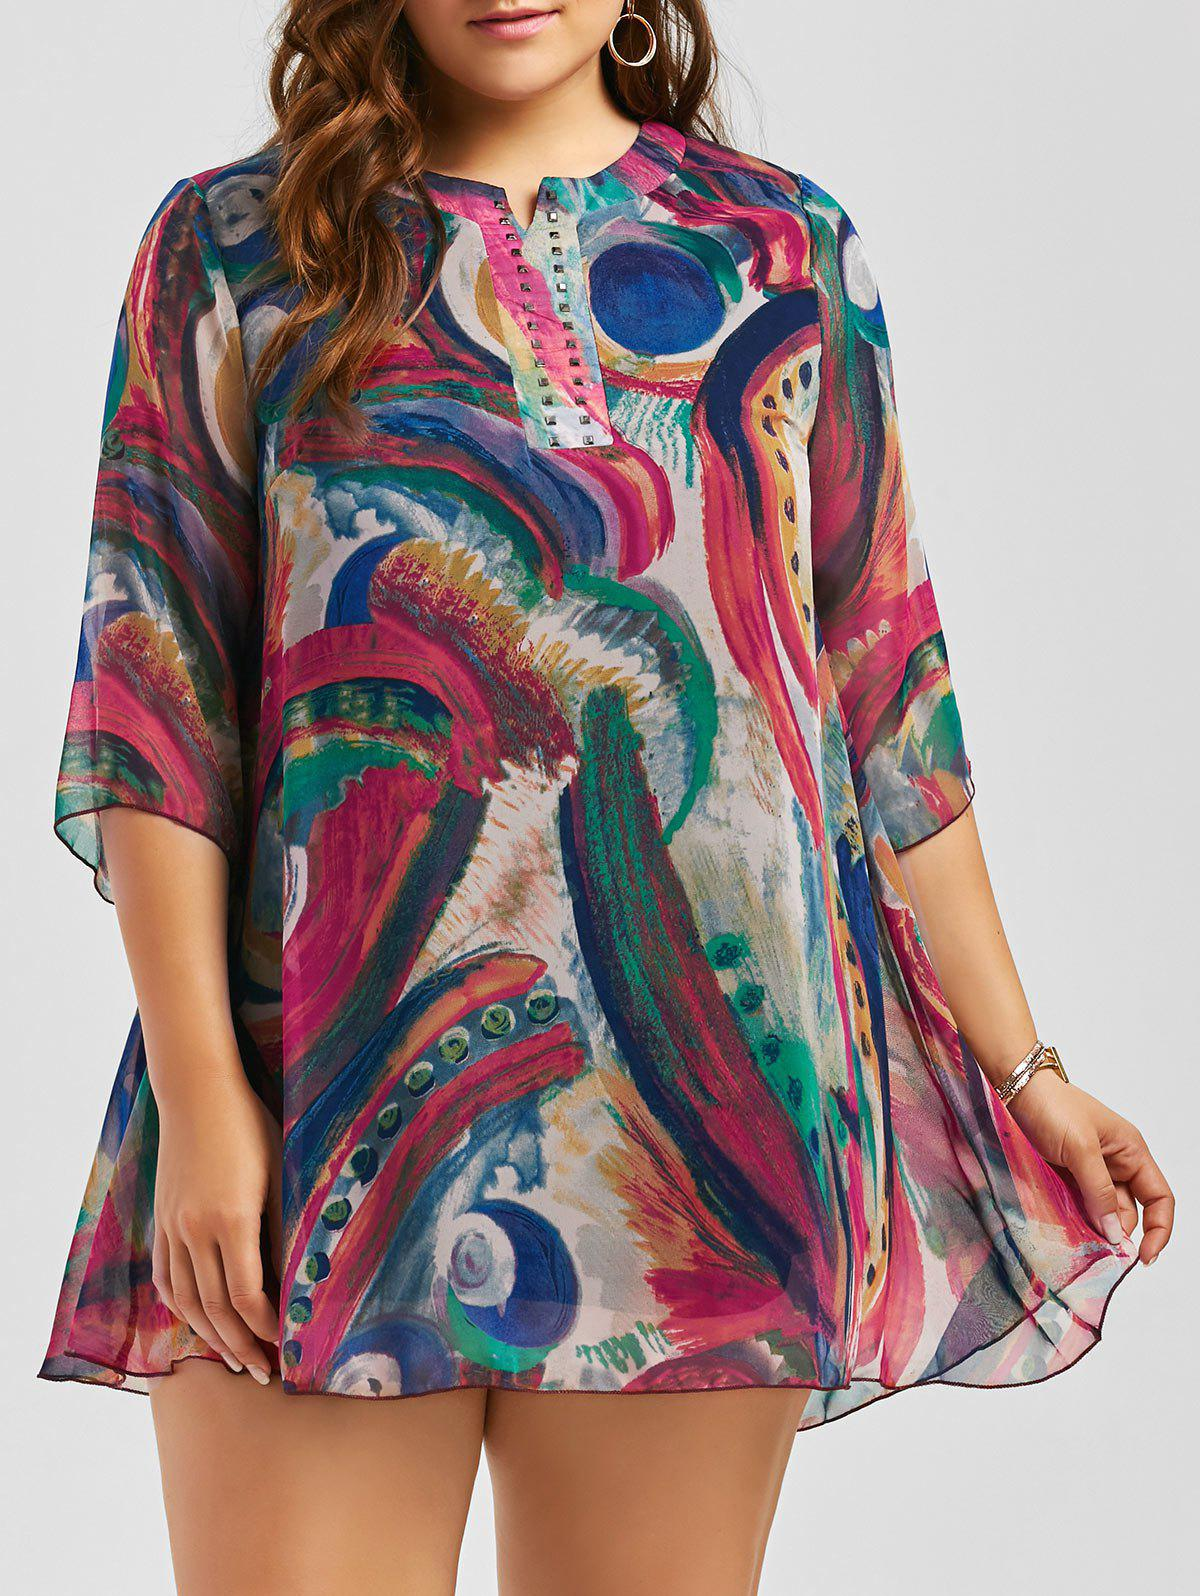 Plus Size Graffiti Printed Studded Chiffon Dress - multicolor 3XL